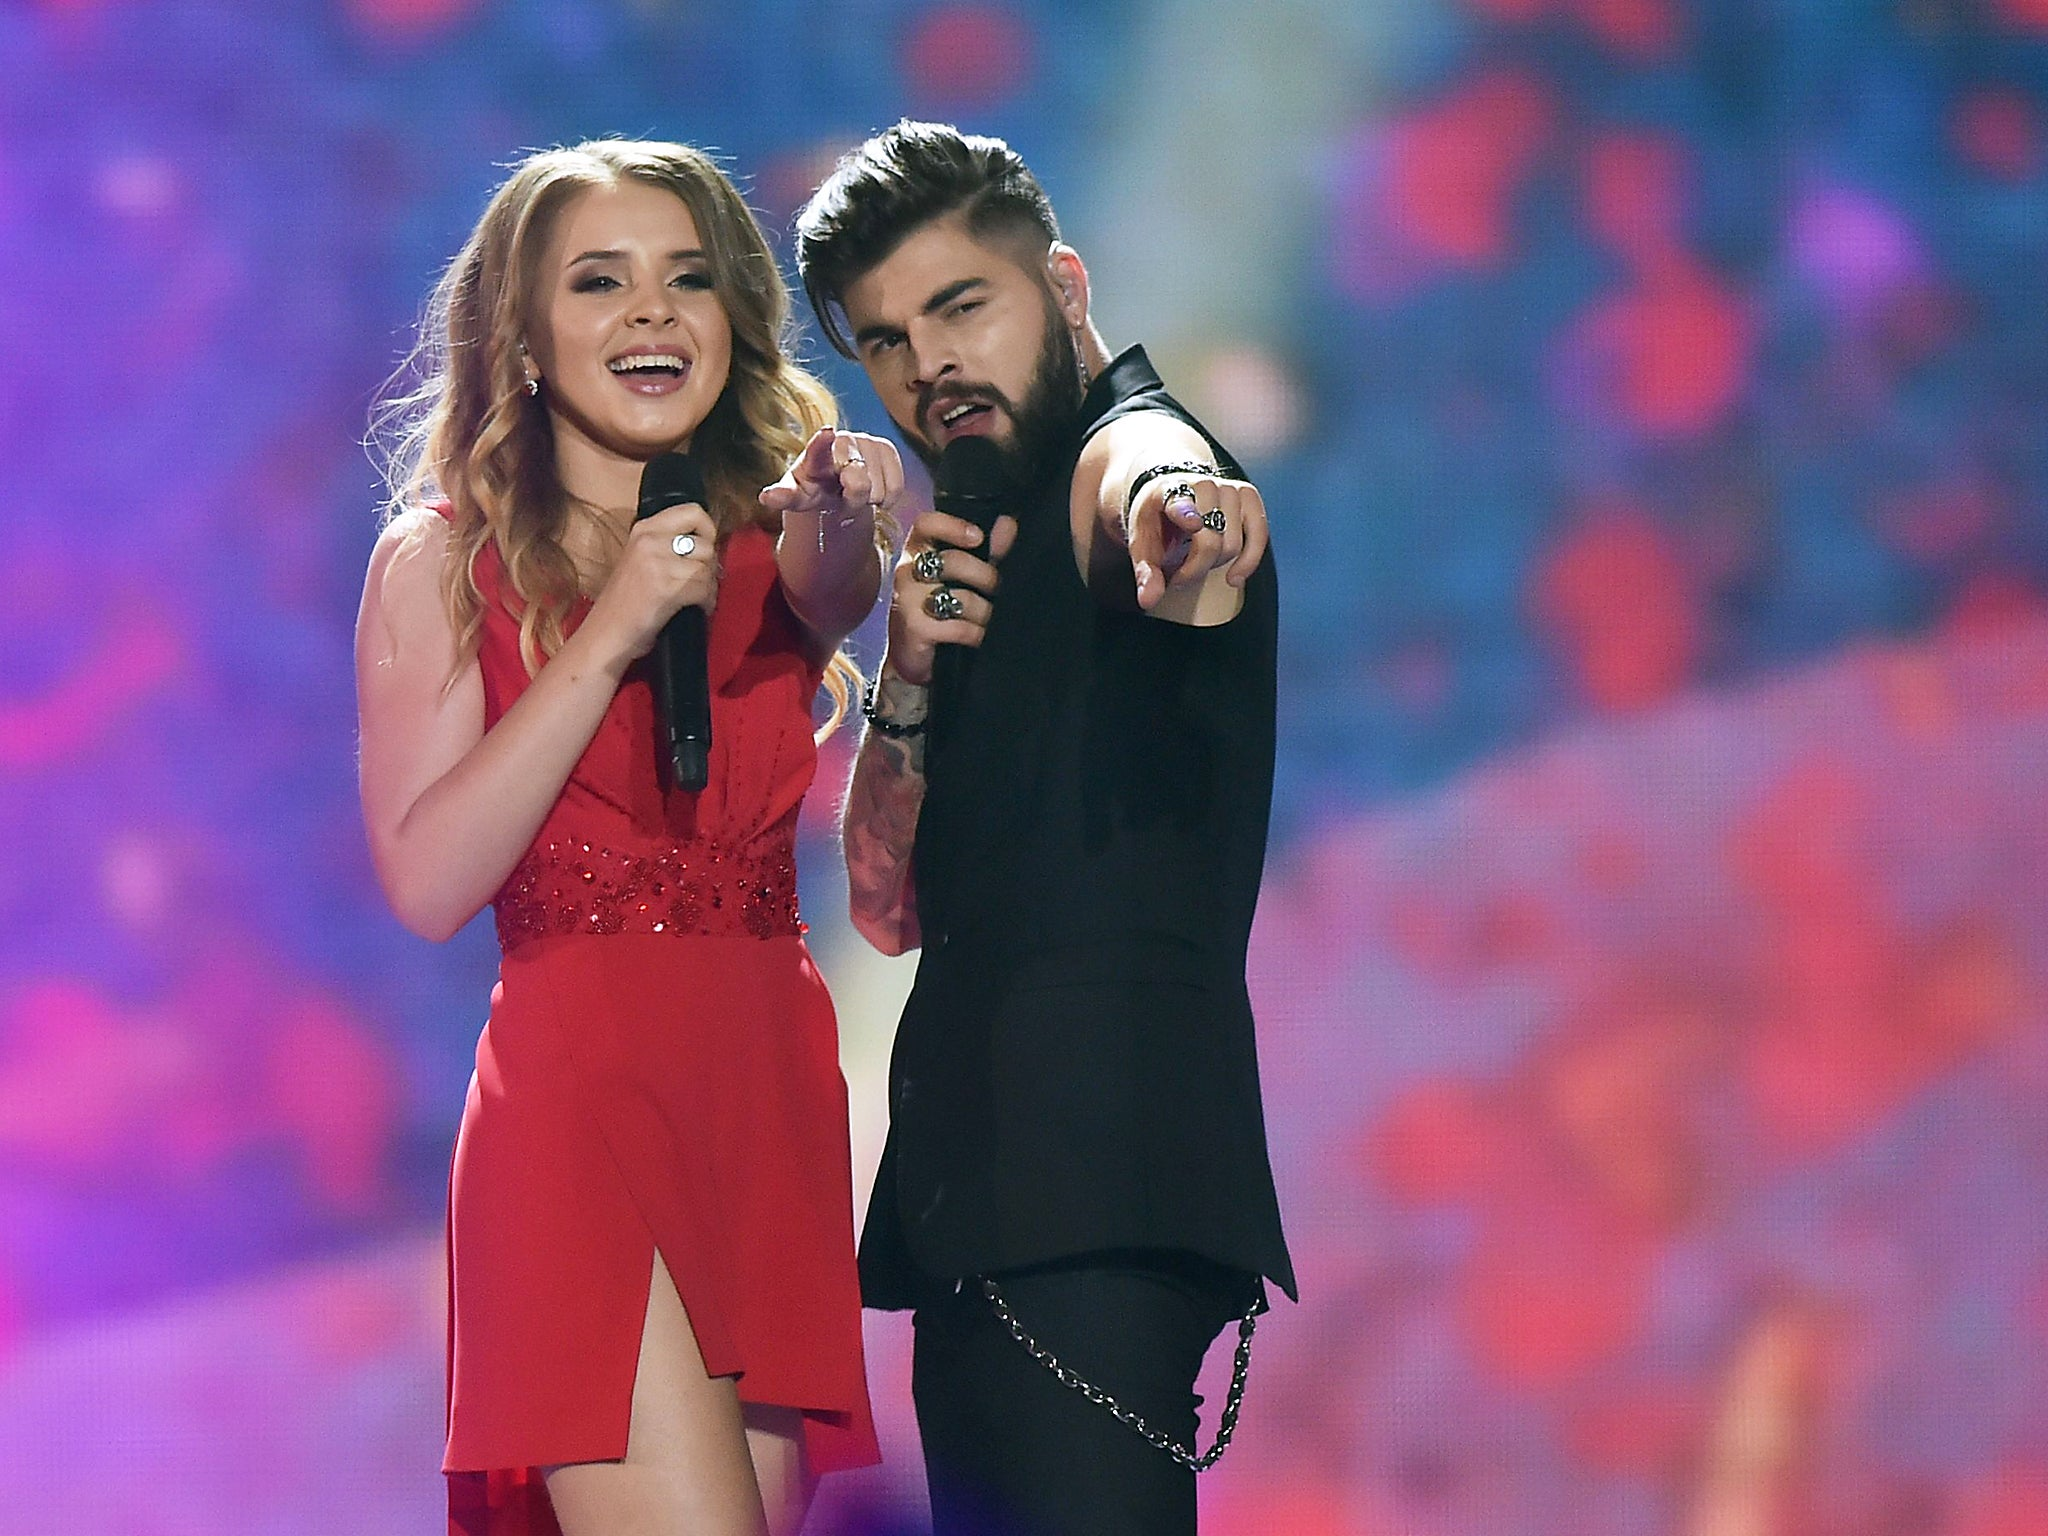 Eurovision 2017: Croatia's entry does a duet with himself